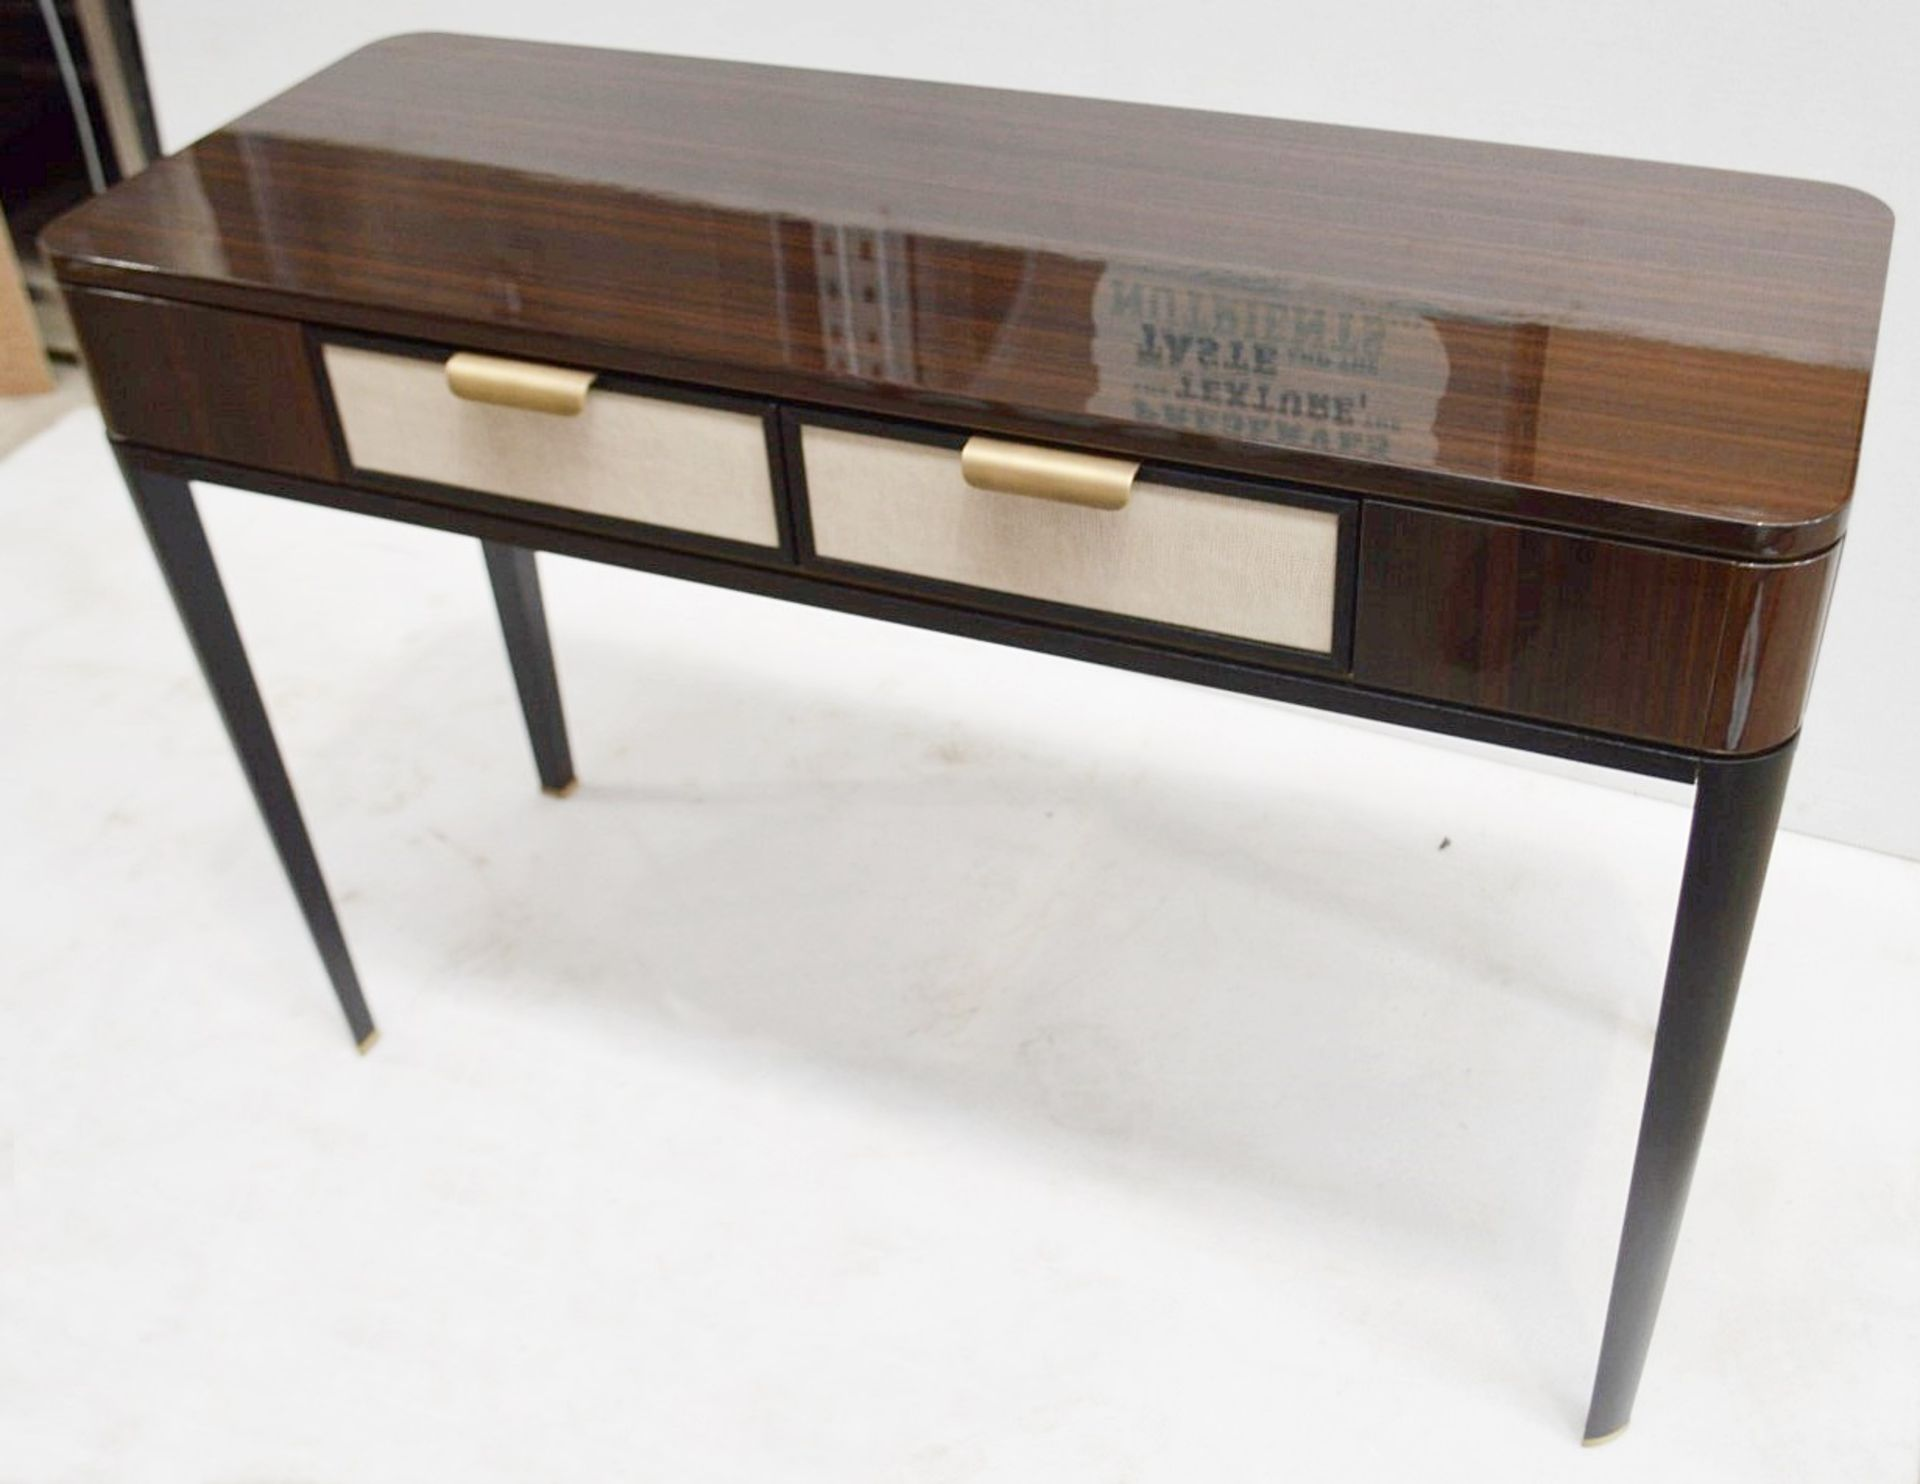 1 x FRATO 'Mandalay' Luxury Designer 2-Drawer Dresser Dressing Table In A Gloss Finish - RRP £4,300 - Image 13 of 17